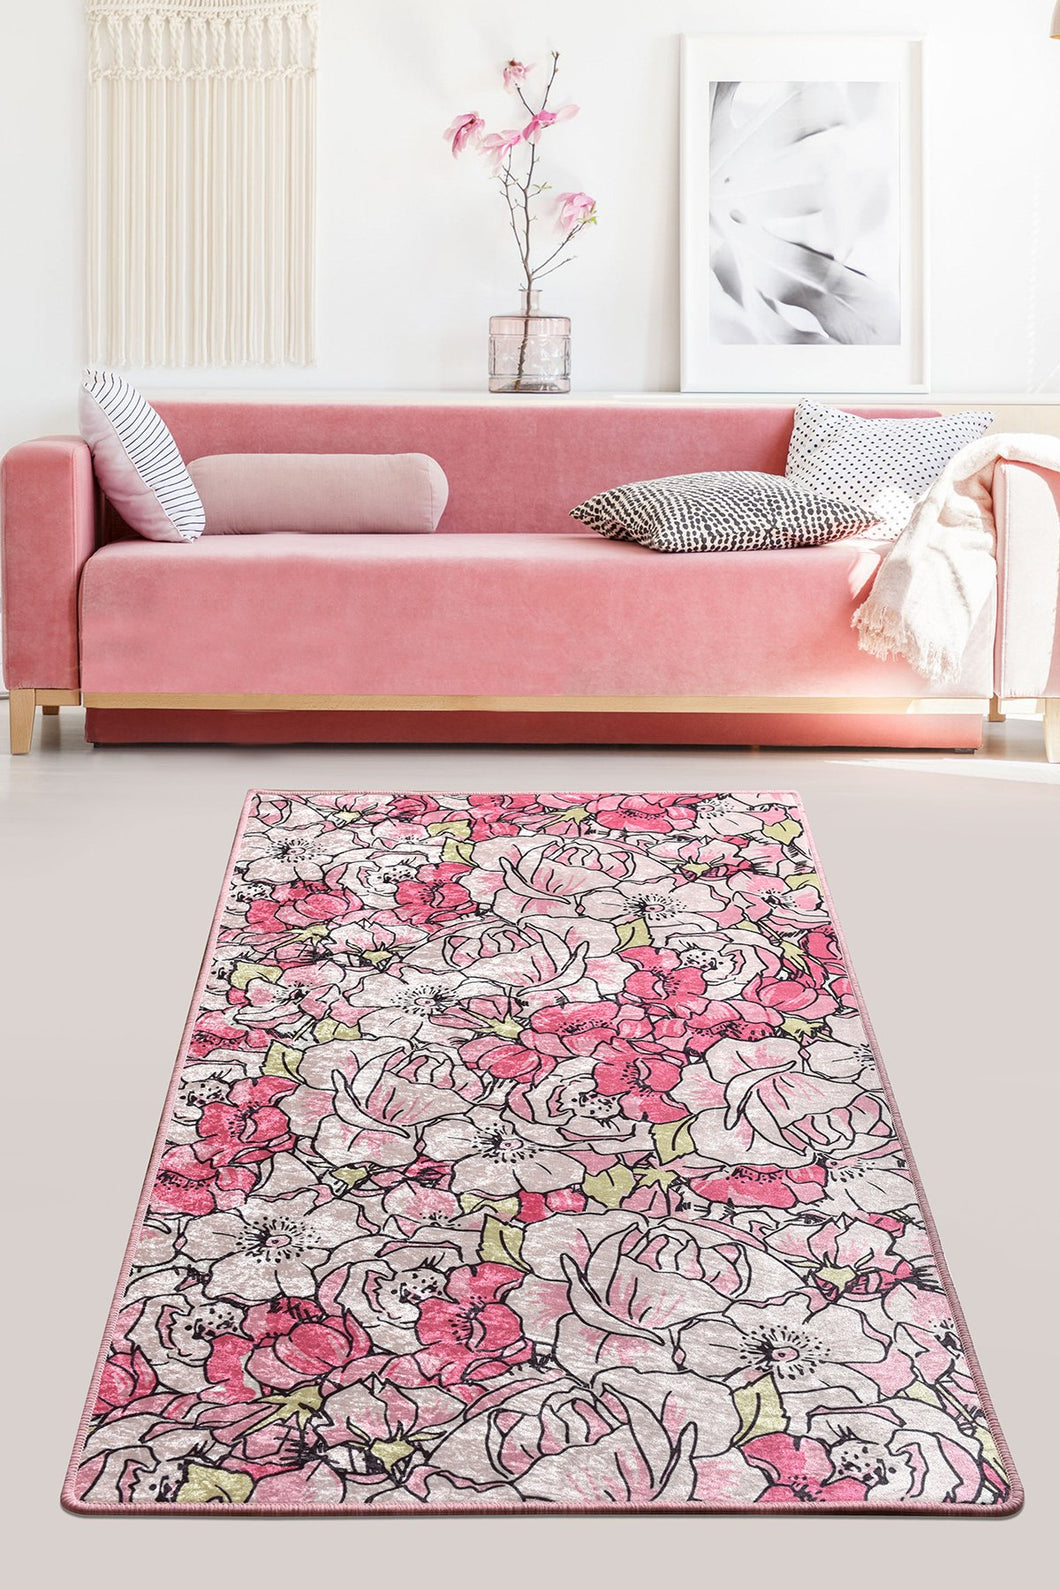 Antdecor Rosa Pink Decorative Carpet 80X200 Cm